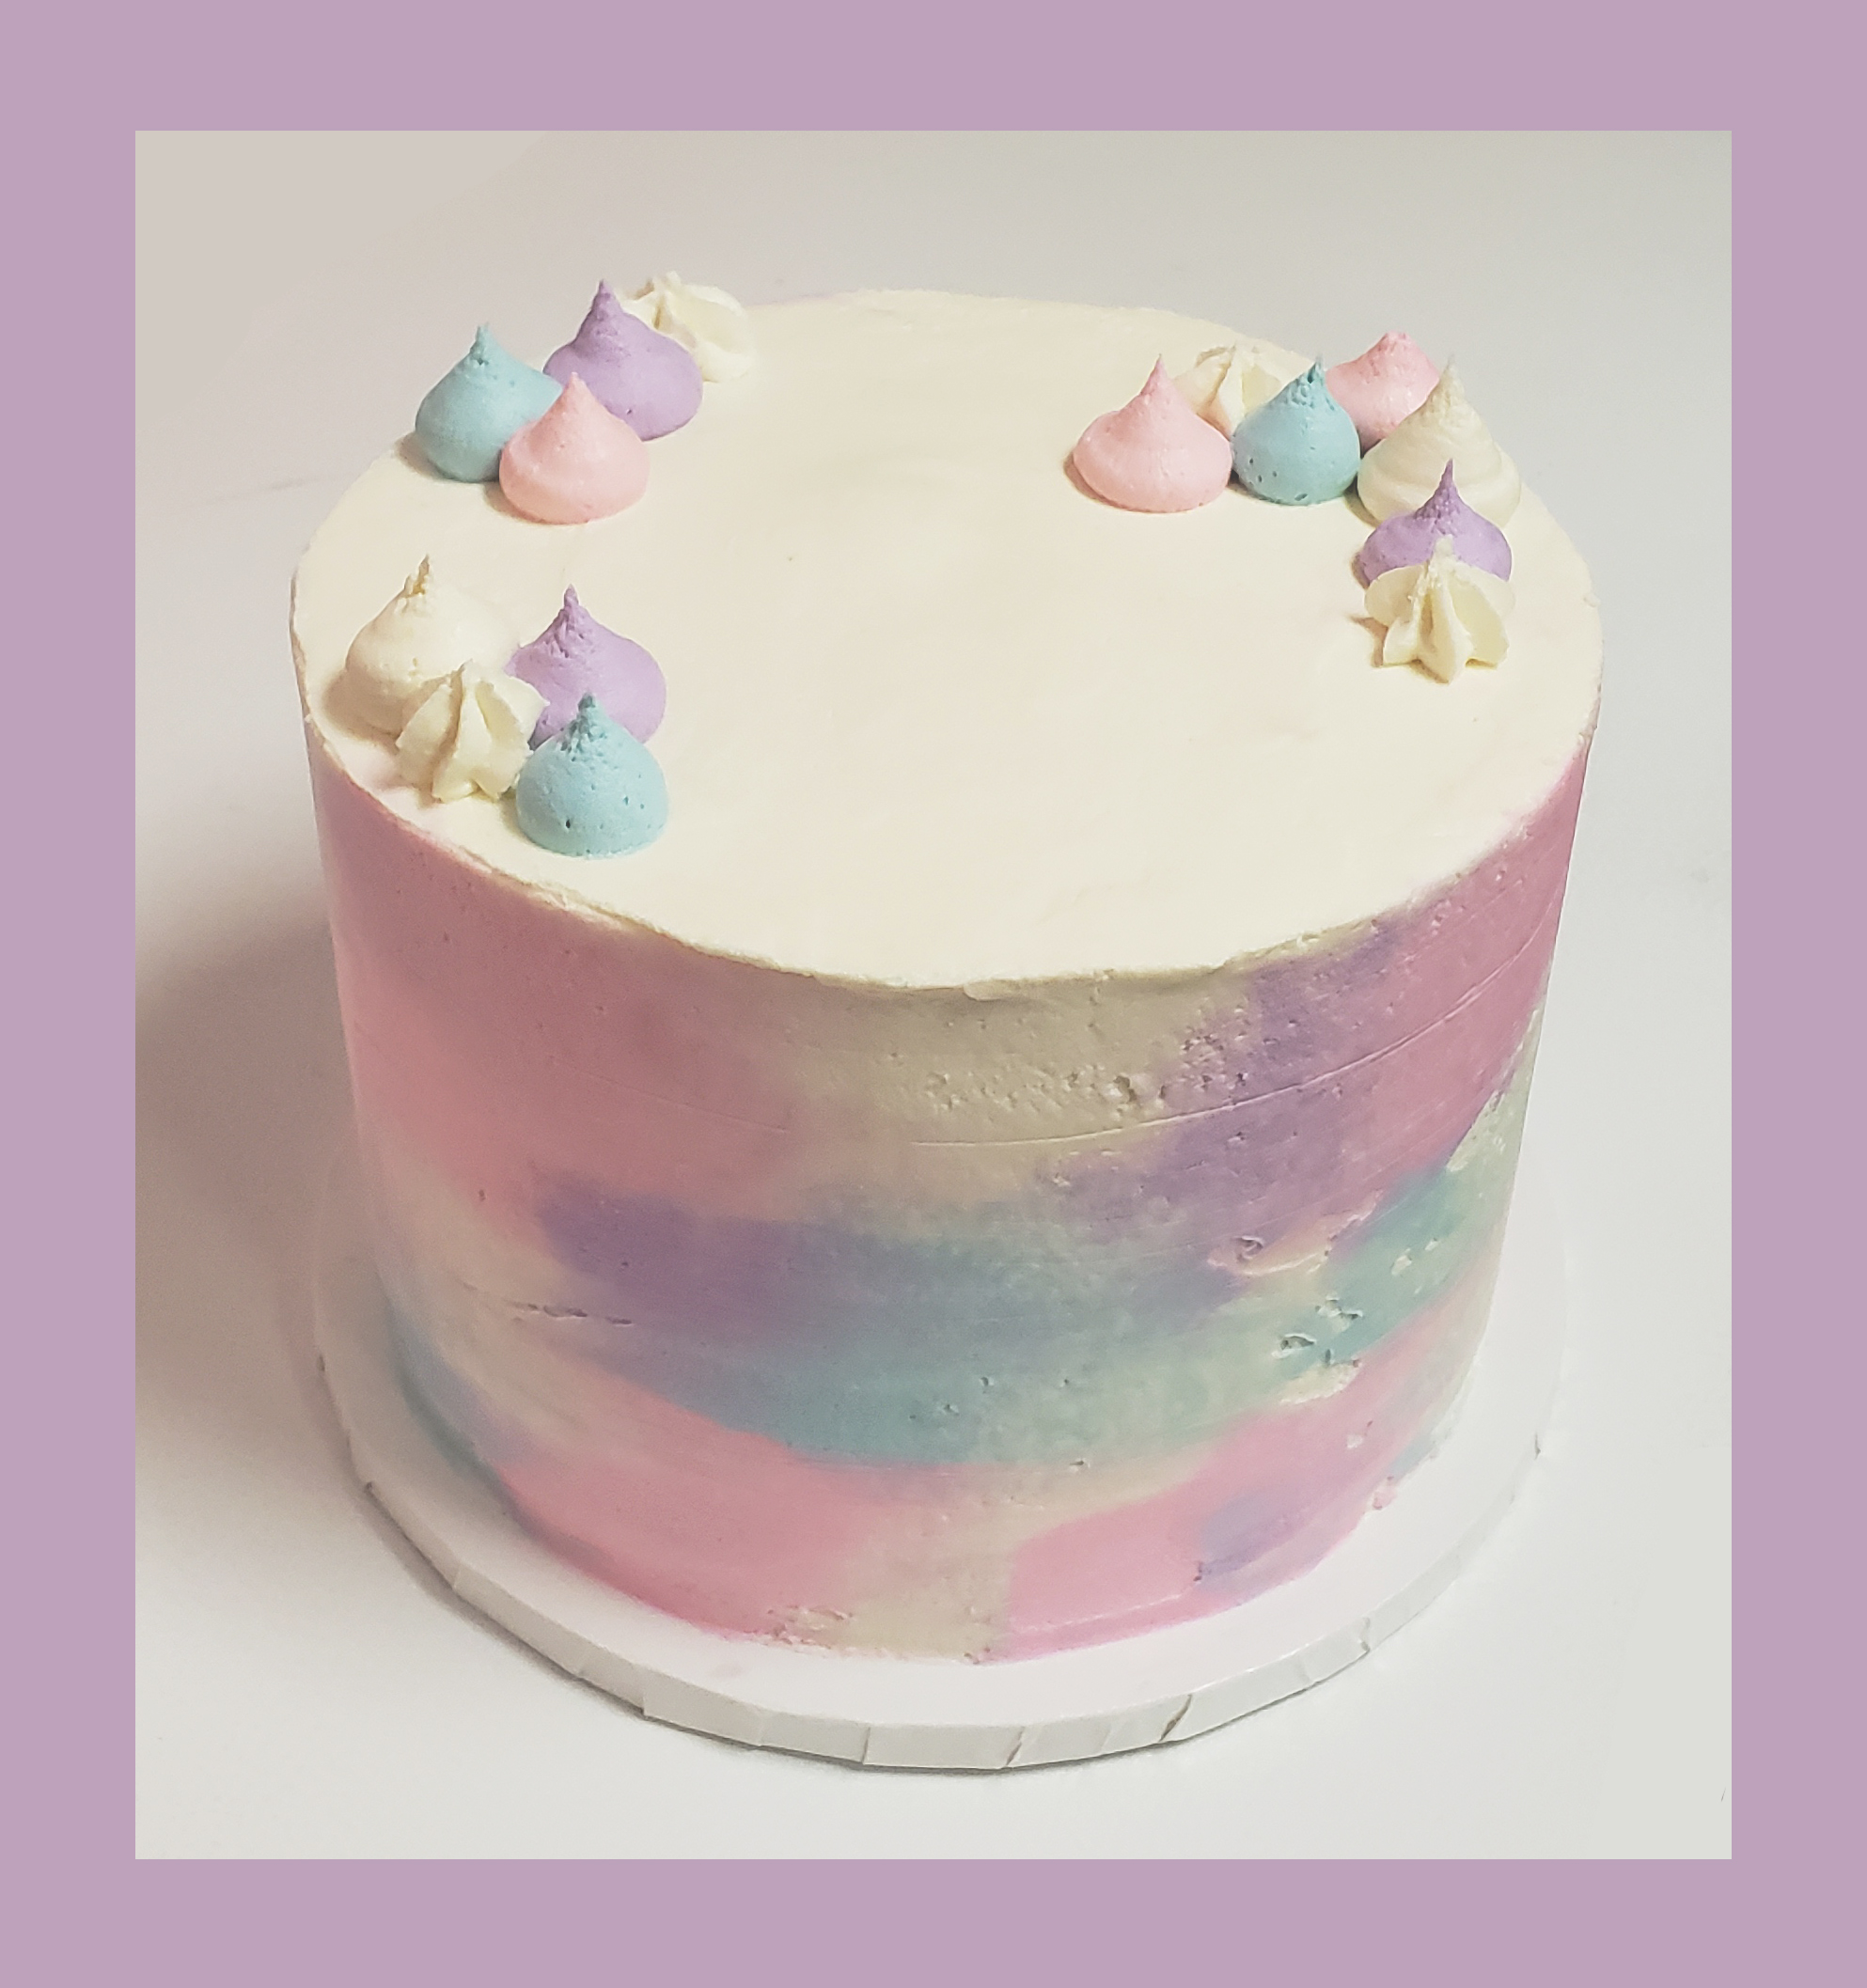 Watercolor Cake 2020